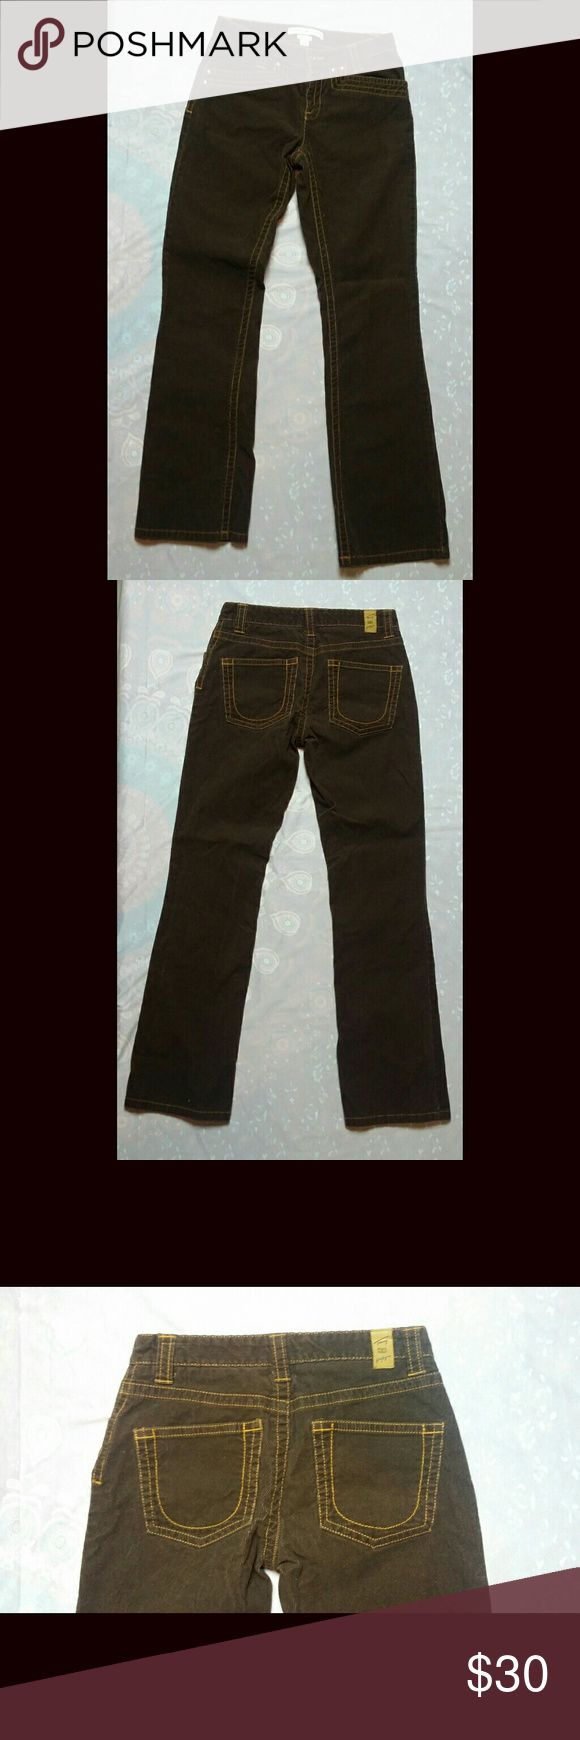 Tommy Hilfiger Hipster Corduroys Boot Cut Corduroys Tommy Hilfiger Pants Boot Cut & Flare